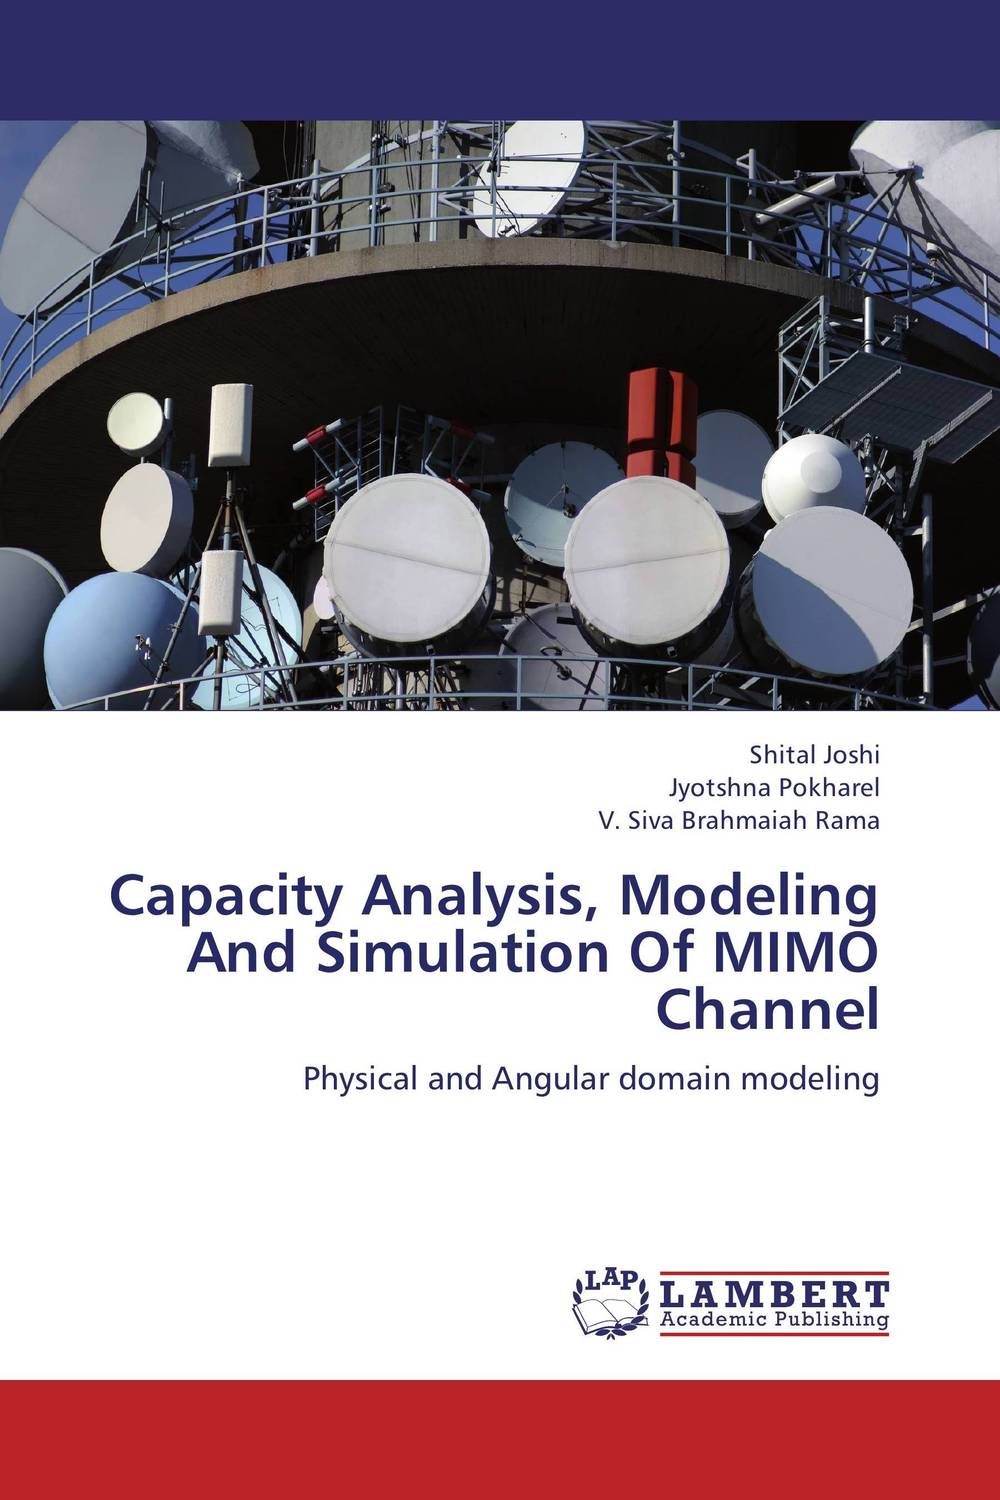 Capacity Analysis, Modeling And Simulation Of MIMO Channel